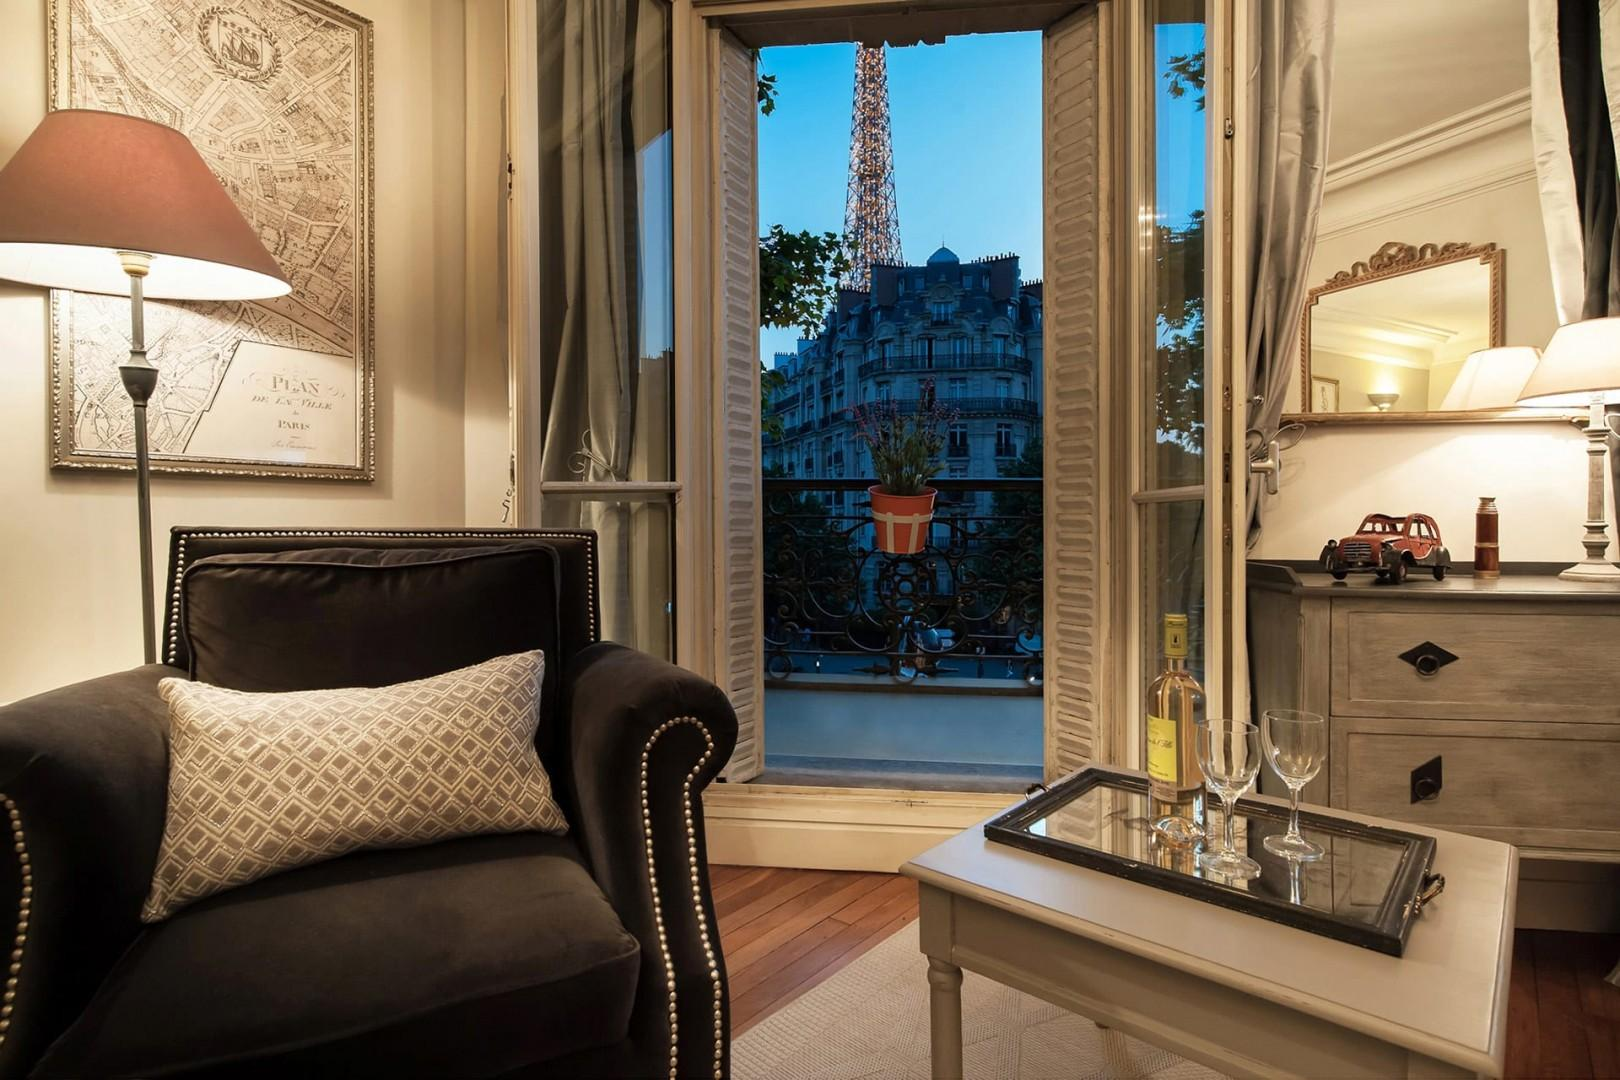 Welcome to the Volnay with unforgettable views of the Eiffel Tower!